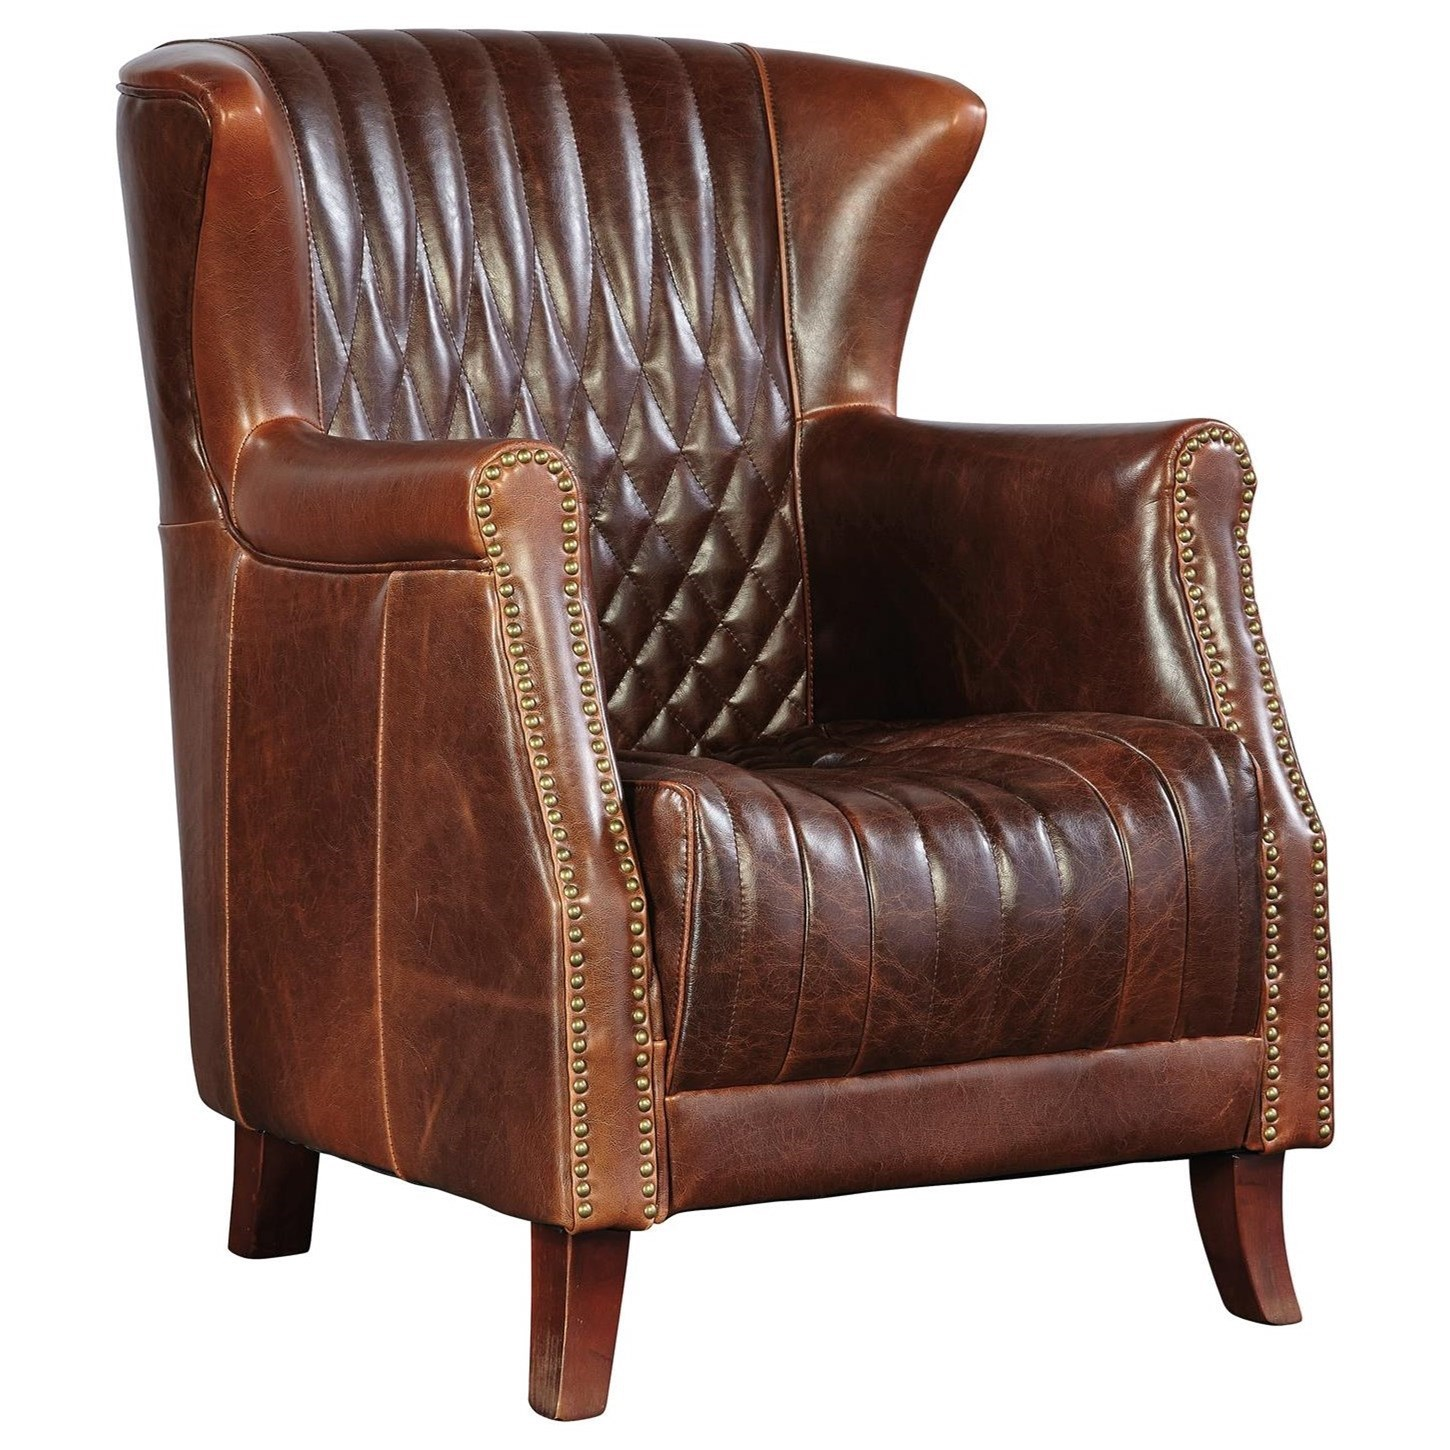 Occasional Chairs Paris Flea Market Chair by Furniture Classics at Alison Craig Home Furnishings